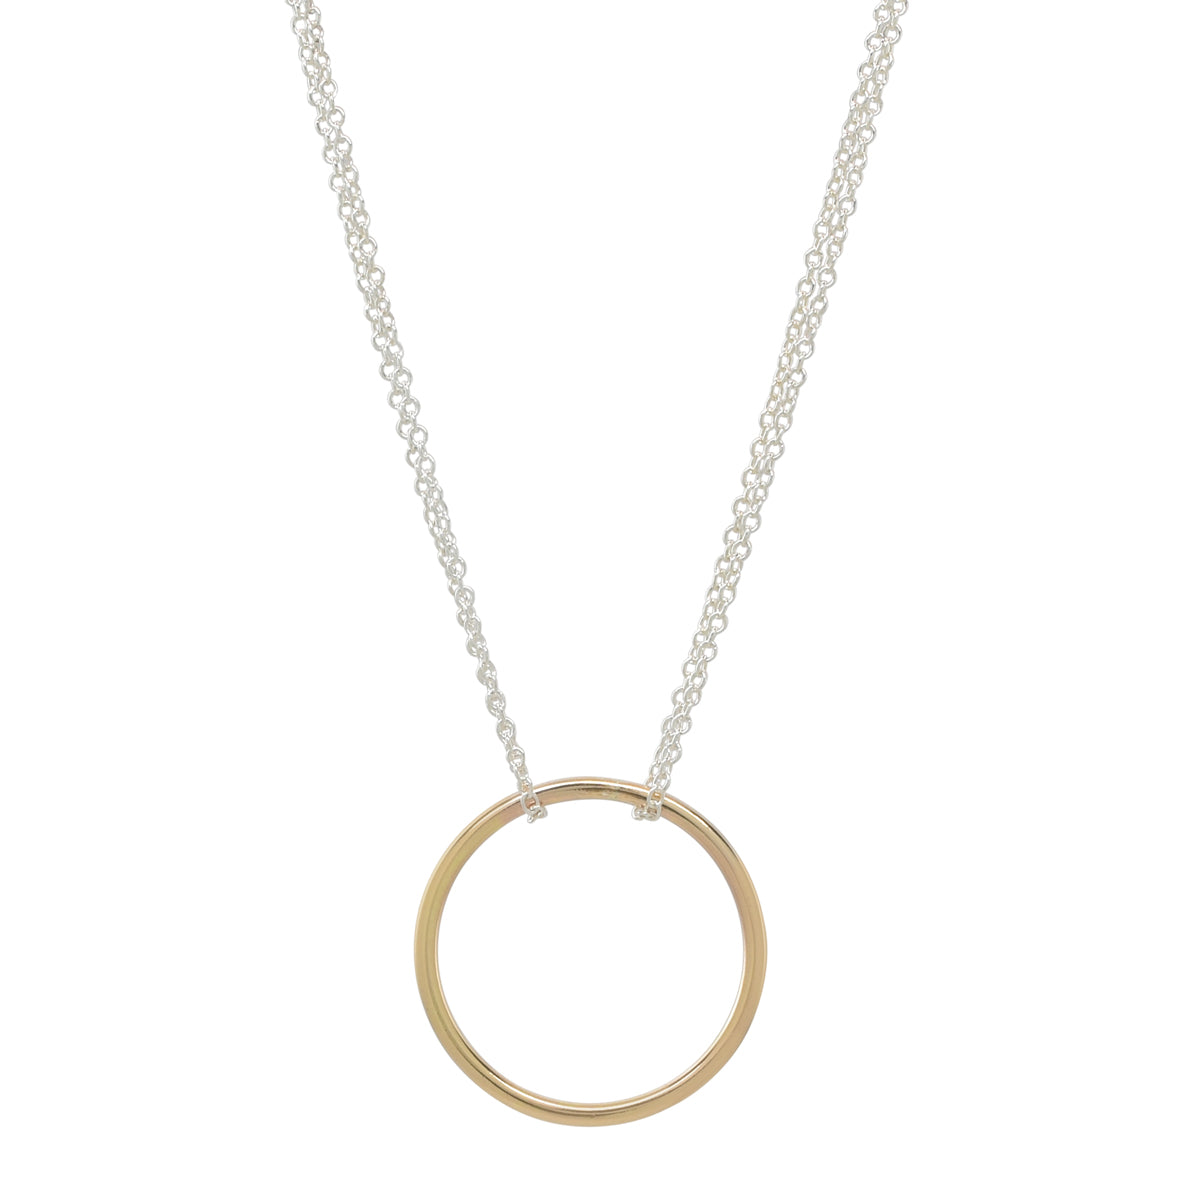 Gold Circle-Silver Chain Necklace